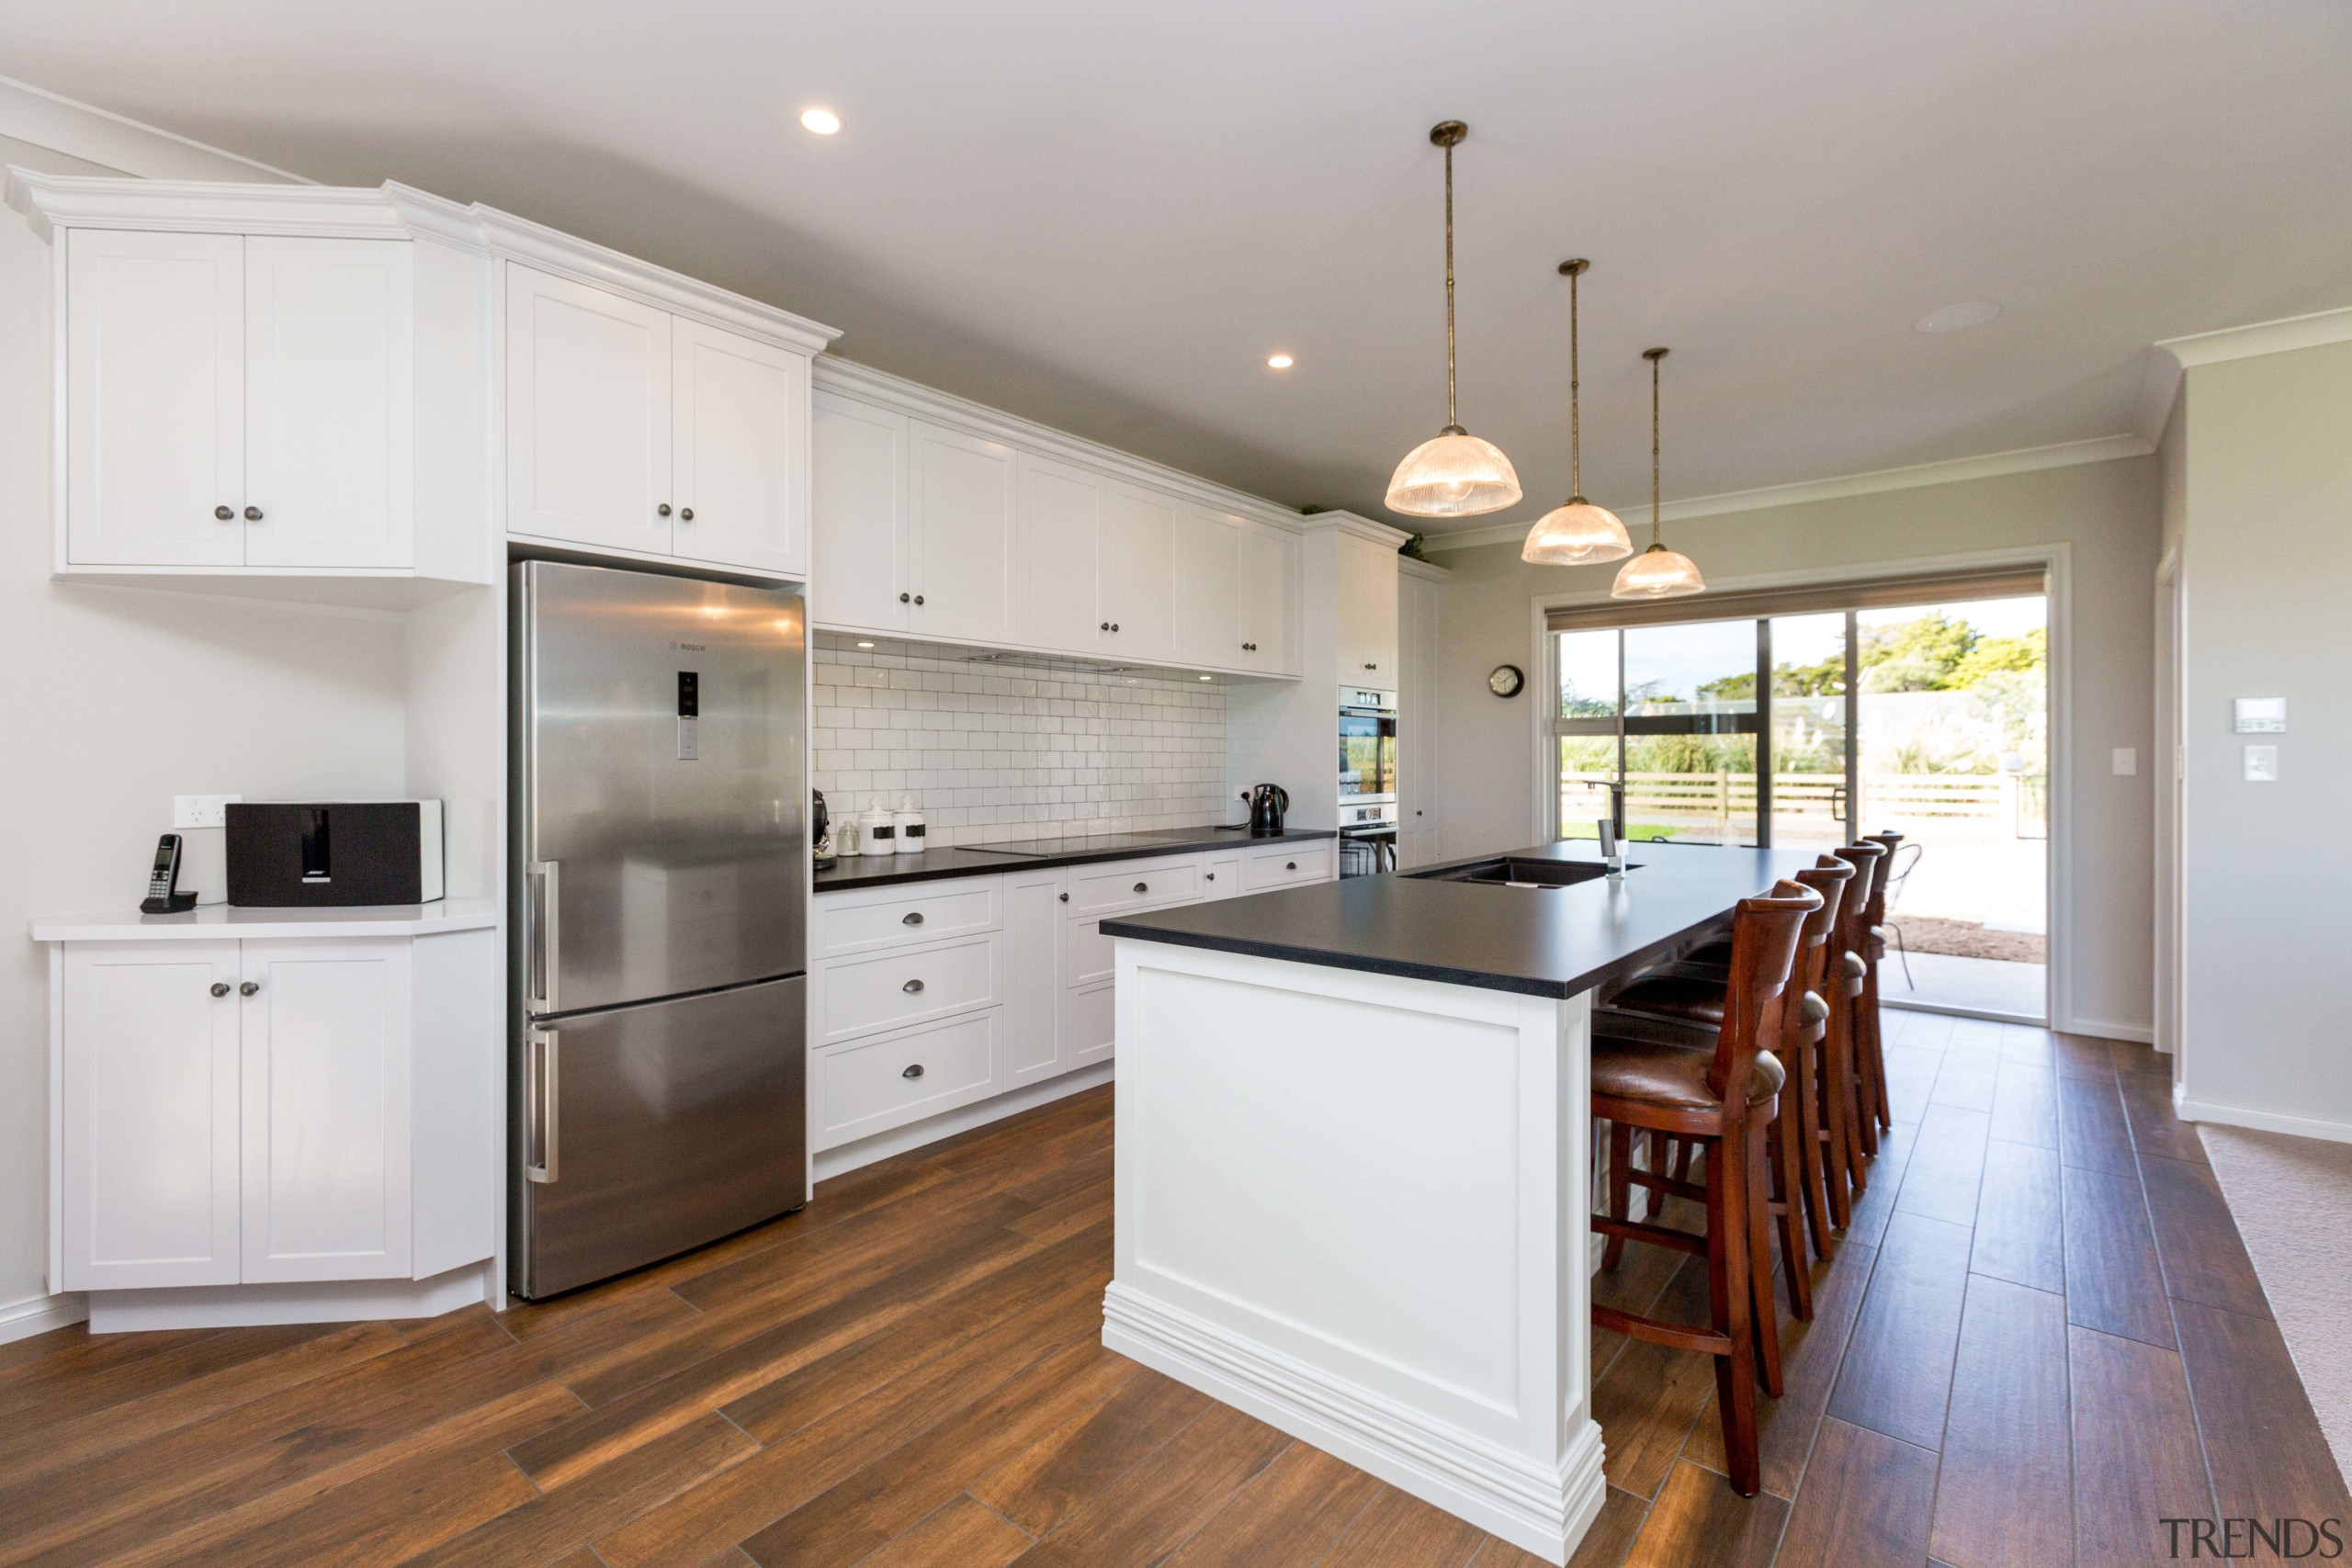 Moulded cabinetry sits above ceramic tiled plank flooring cabinetry, countertop, cuisine classique, floor, flooring, hardwood, interior design, kitchen, laminate flooring, property, real estate, room, wood flooring, gray